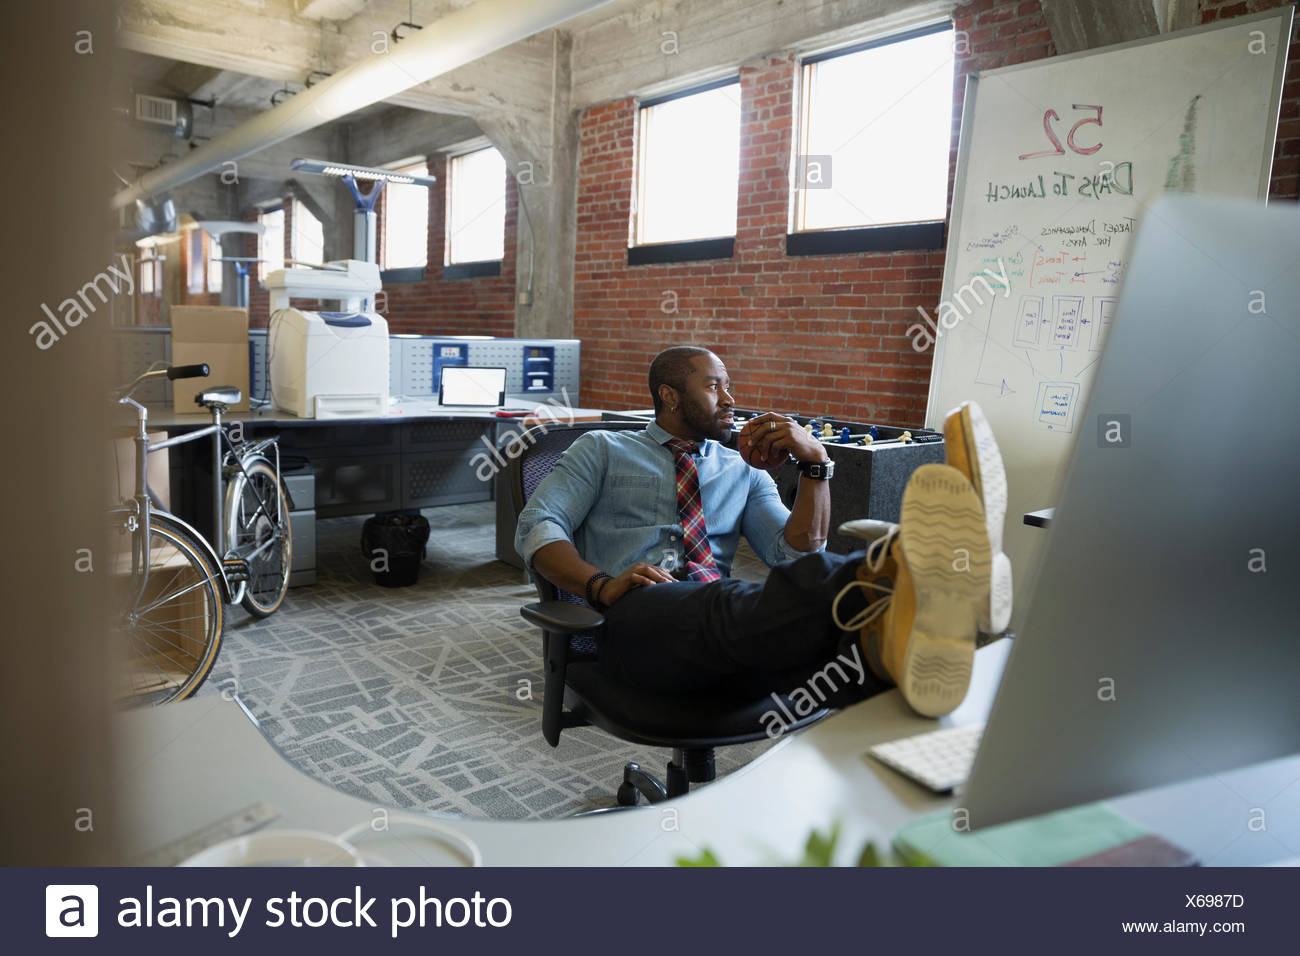 Entrepreneur with feet up on desk new office - Stock Image